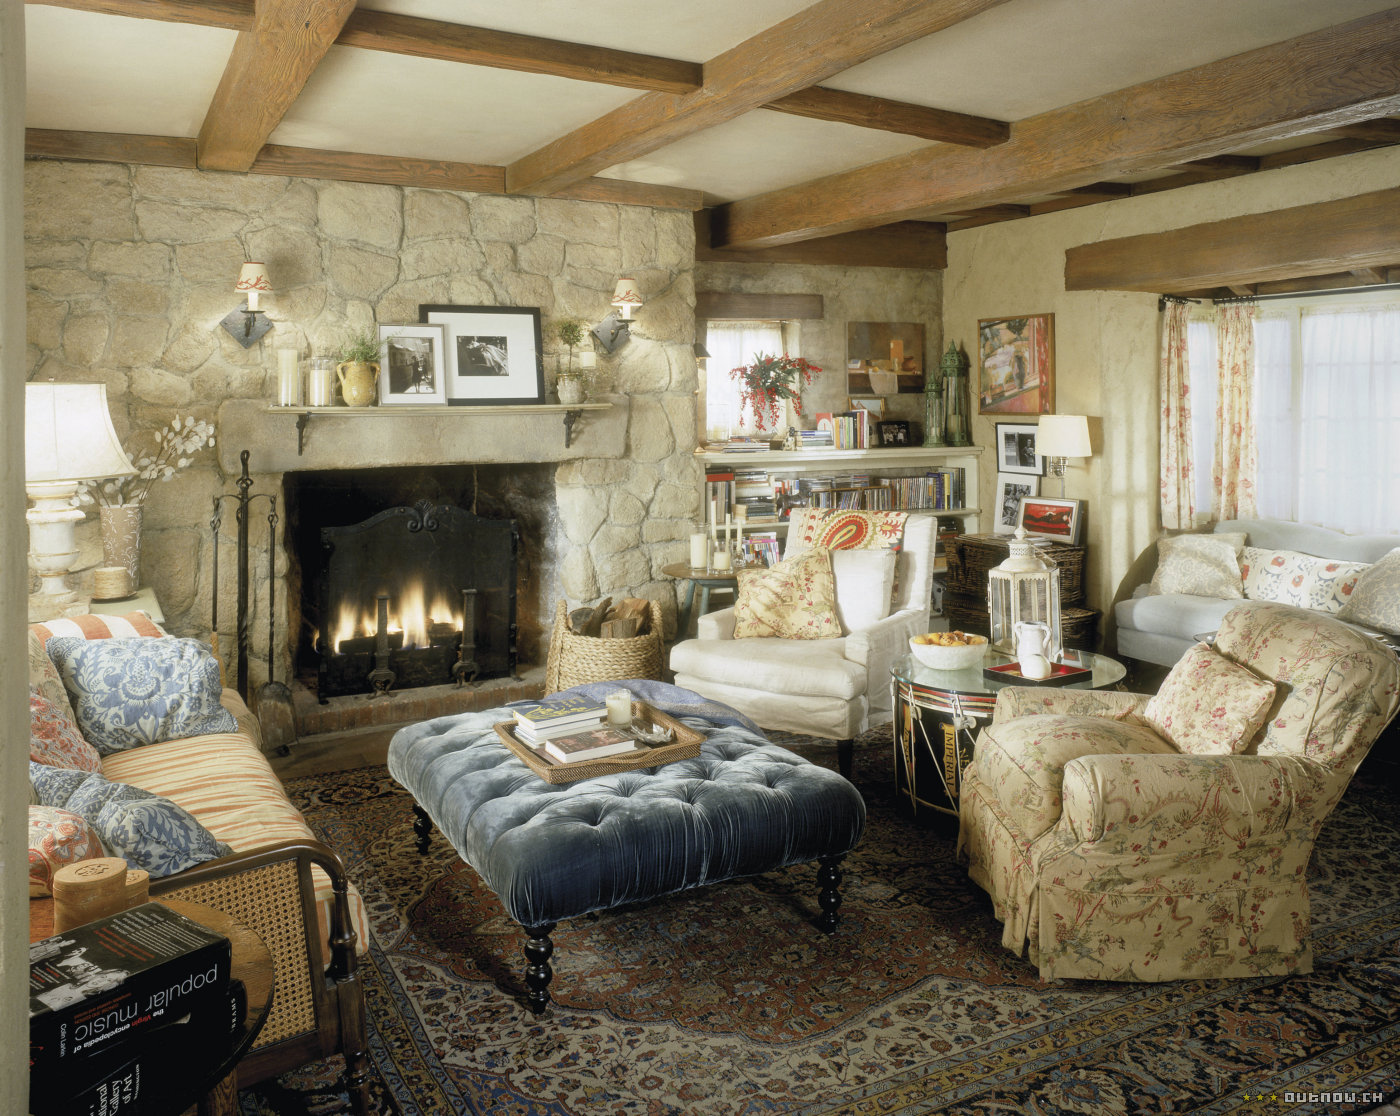 Modern country style november 2011 - Country style living room ...